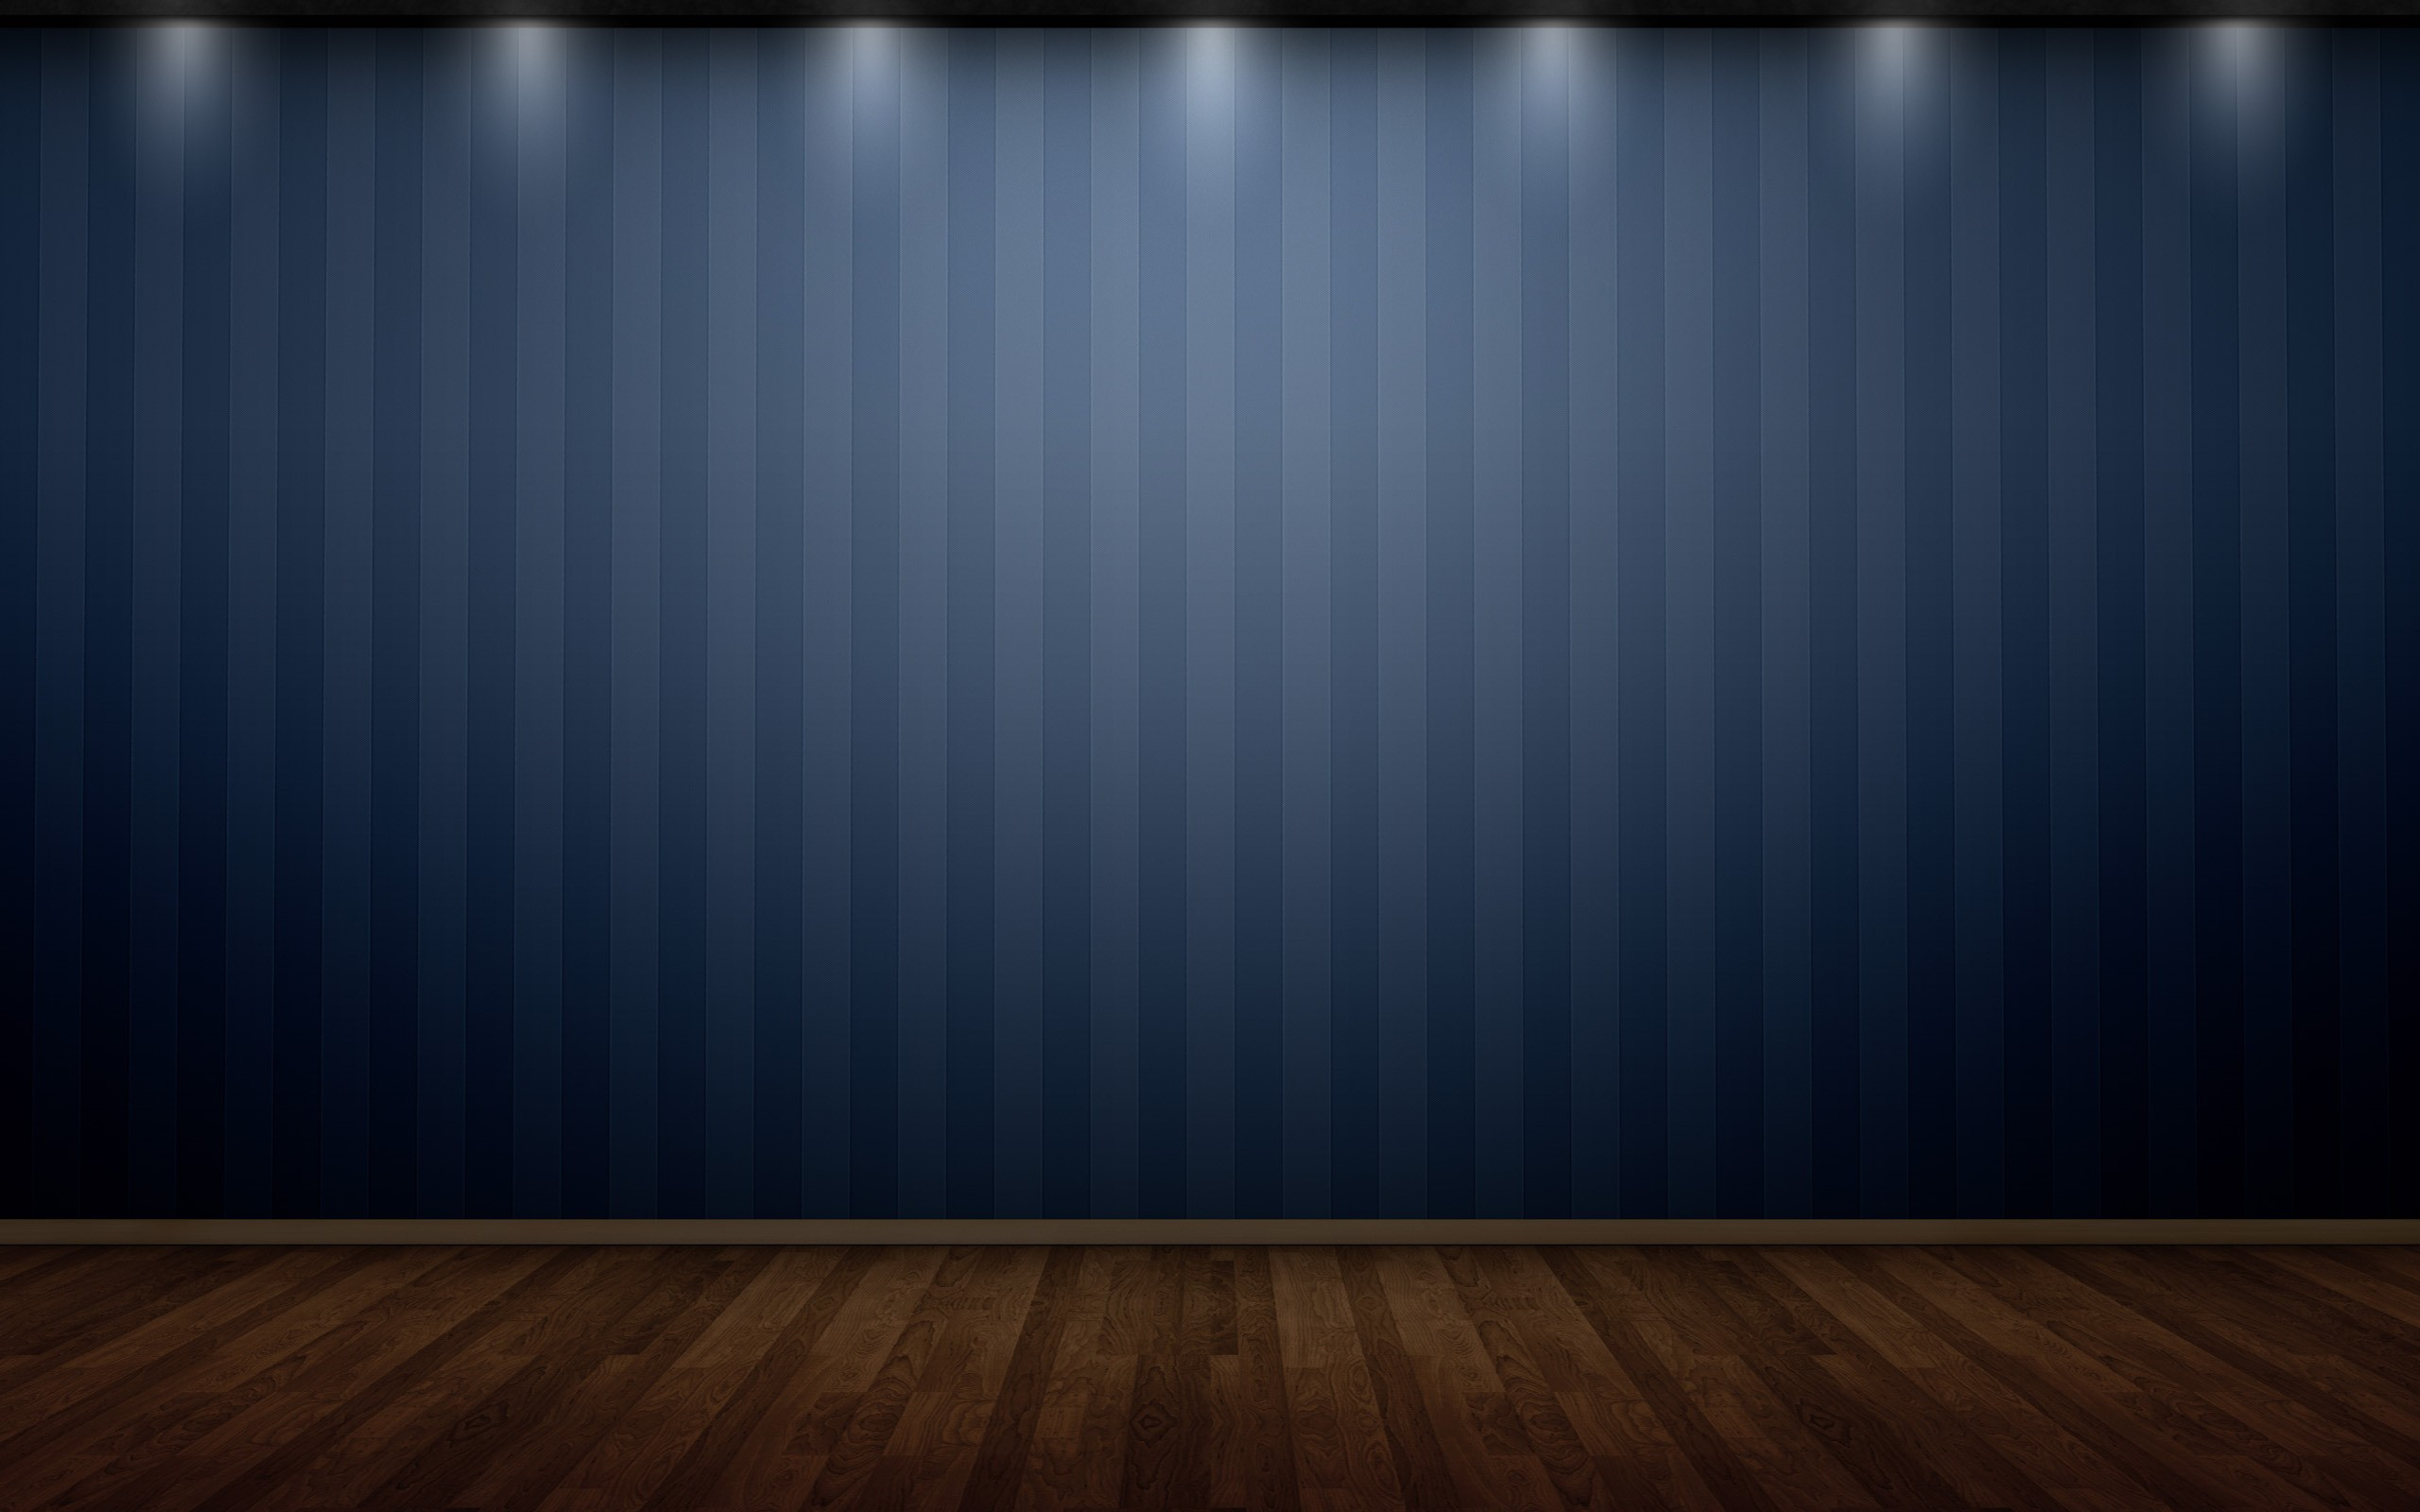 Stage Background Images